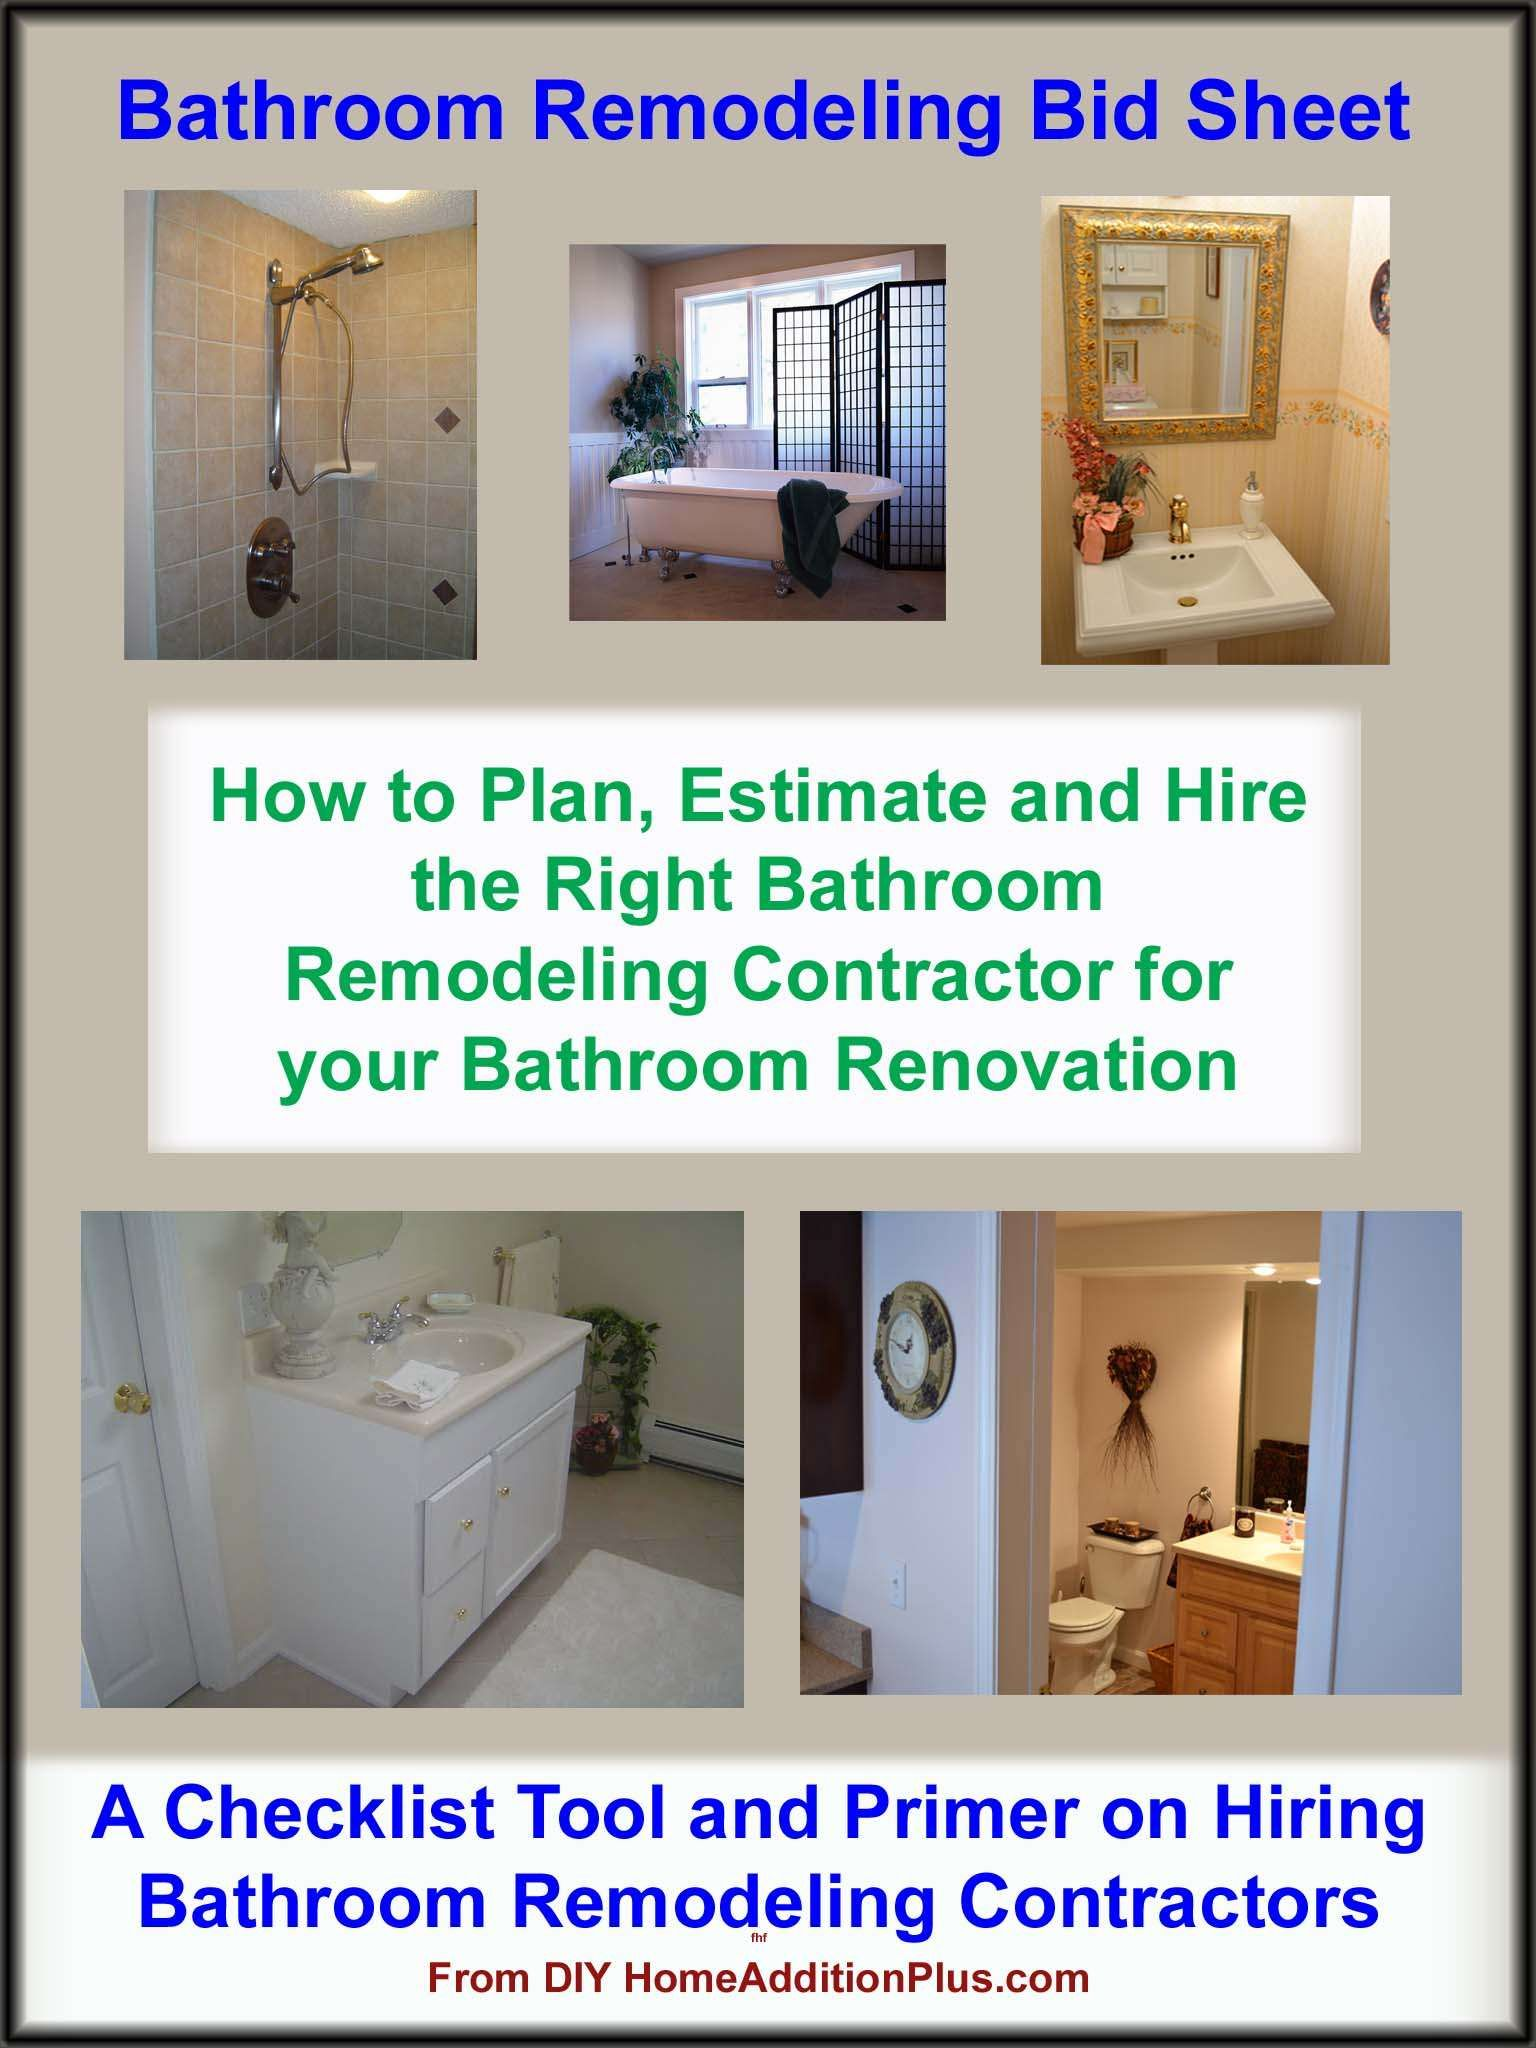 Get The Bathroom Remodeling Bid Sheet Today It Will Show You How To - Bathroom remodel checklist for contractors